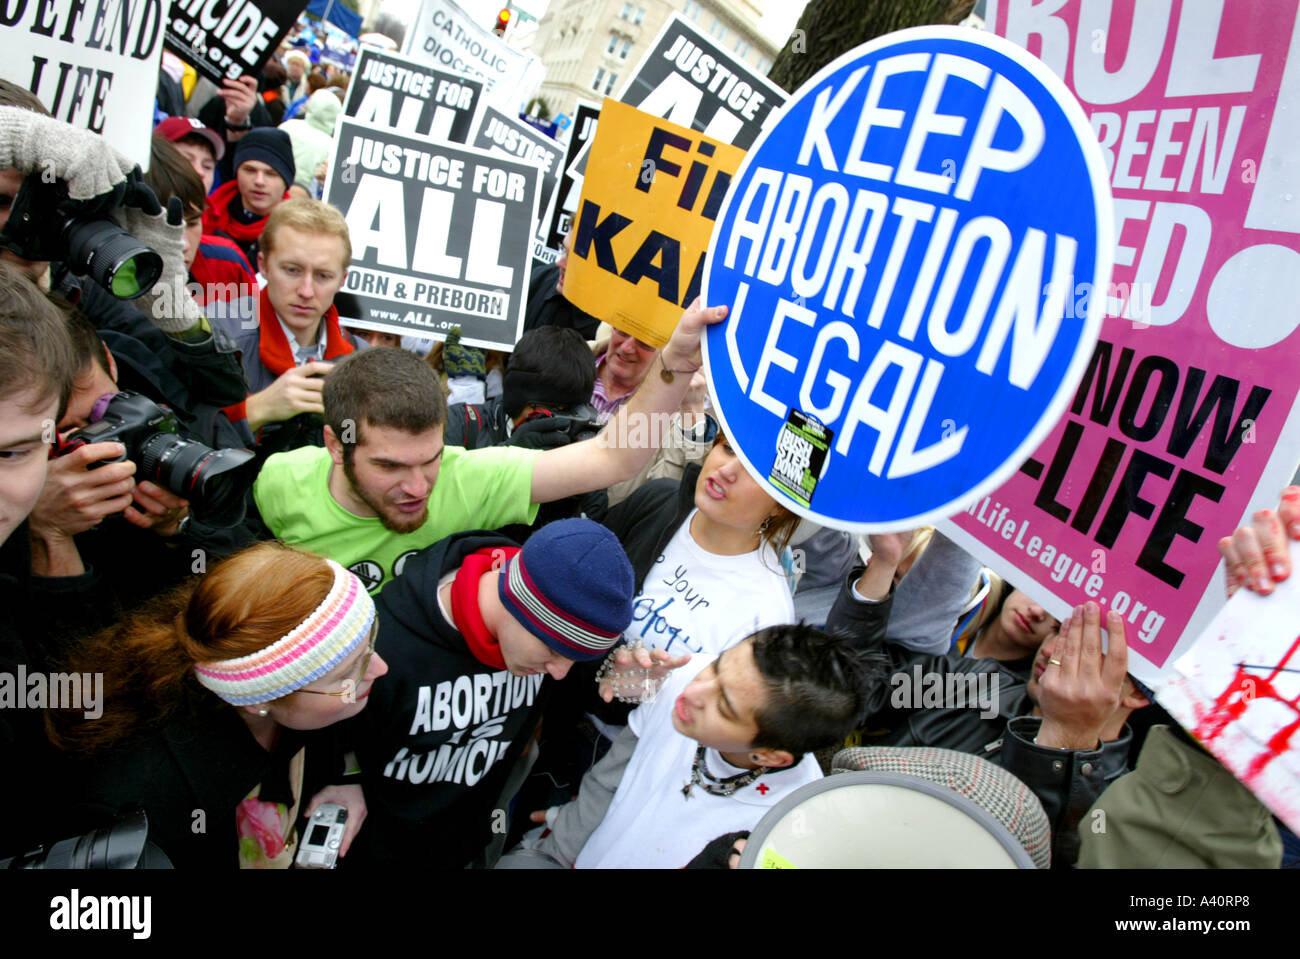 Pro-Life activists take part in the annual March for Life protest, Washington DC. January 23 2006. - Stock Image